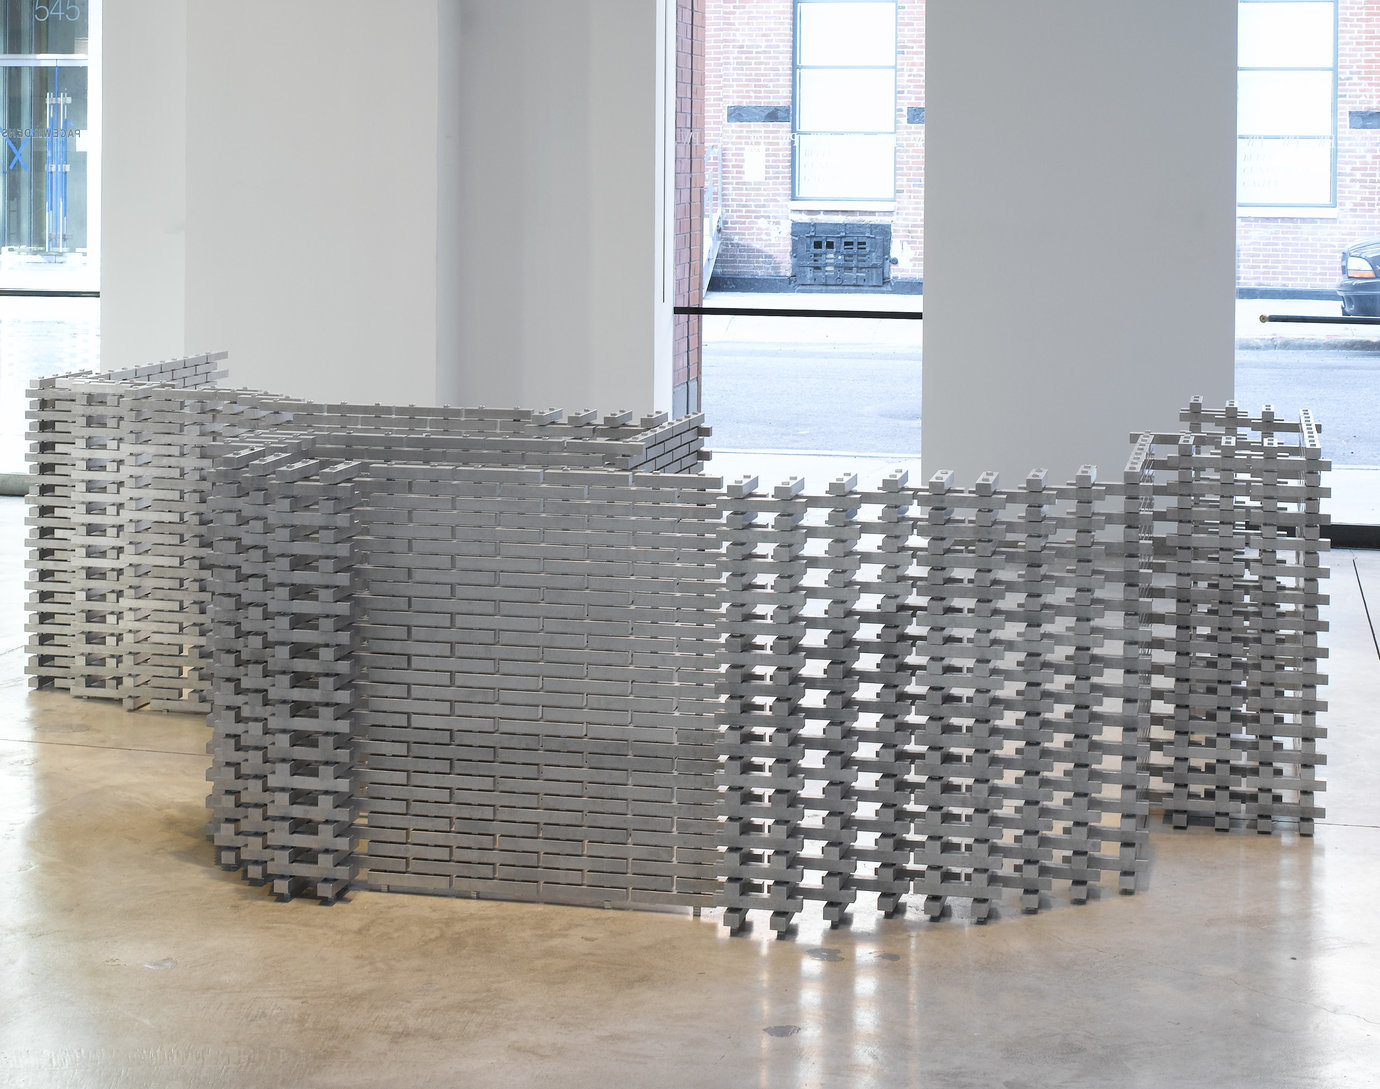 ", 2006. Aluminum, stainless steel and zinc plated steel, 36"" x 12&apos; x 10&apos; (91.4 cm x 365.8 cm x 304.8 cm)."